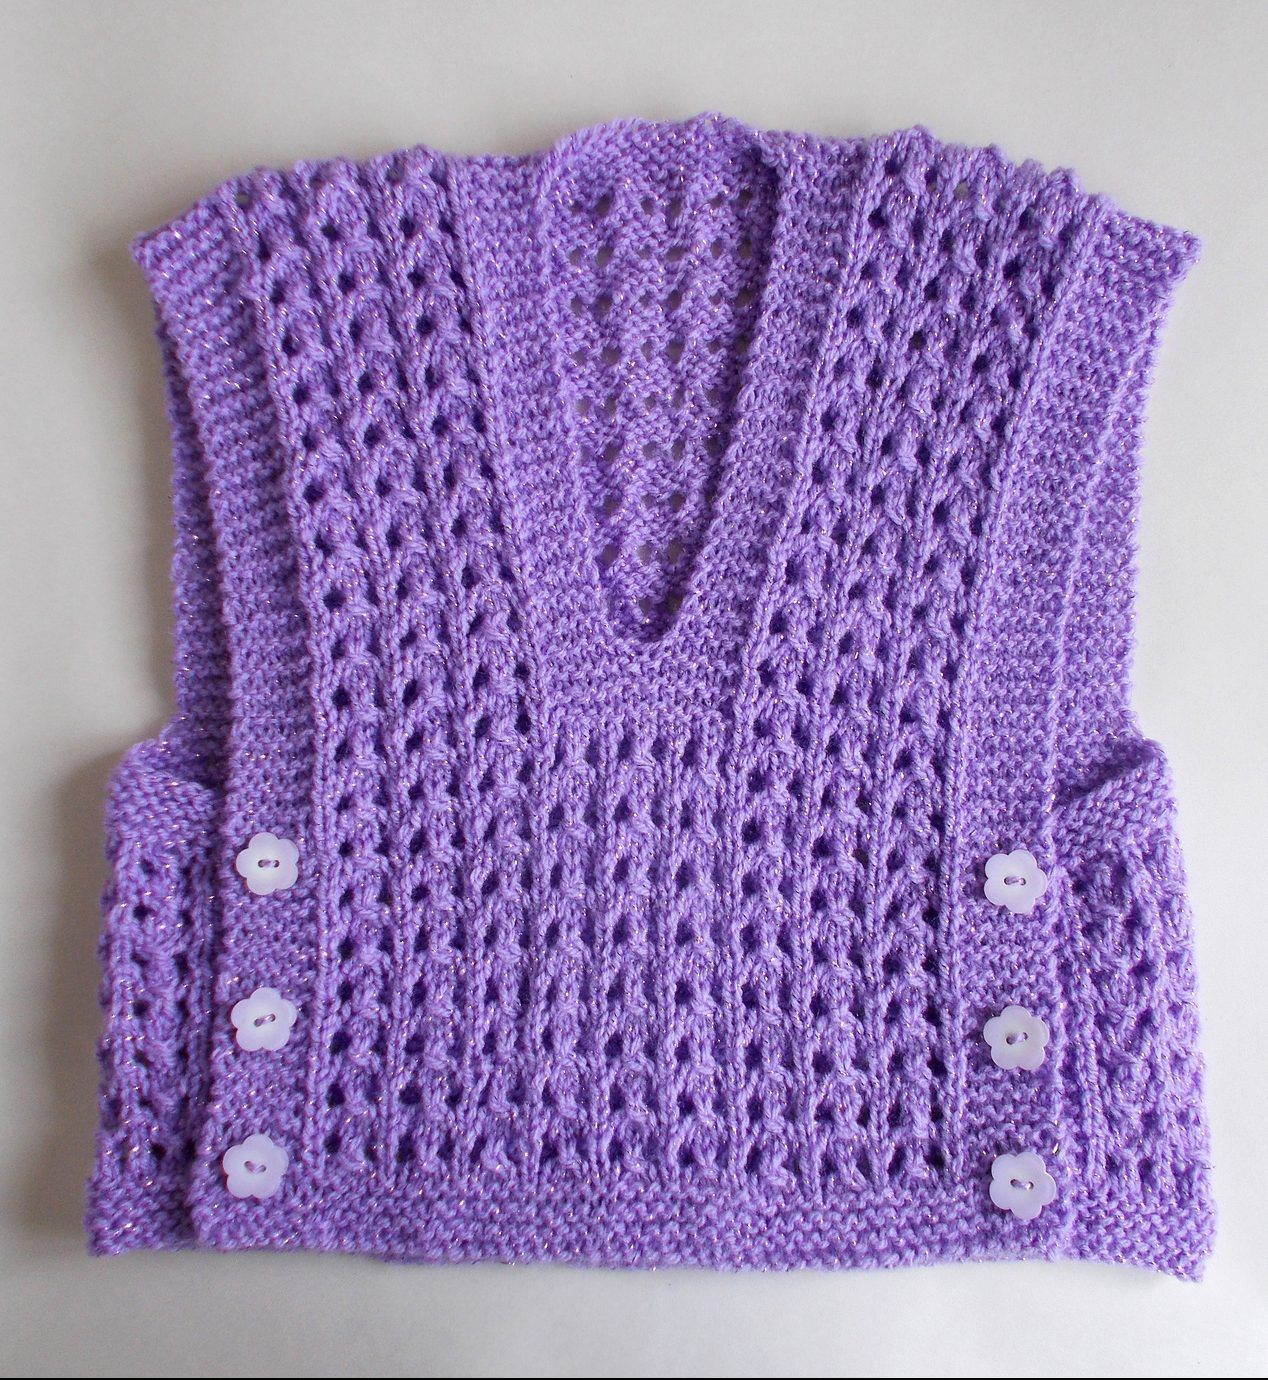 Knitting Pattern Vest Top : Free Knitting Pattern for Melika Lacy Baby Vest Top - marianna mel s easy lac...